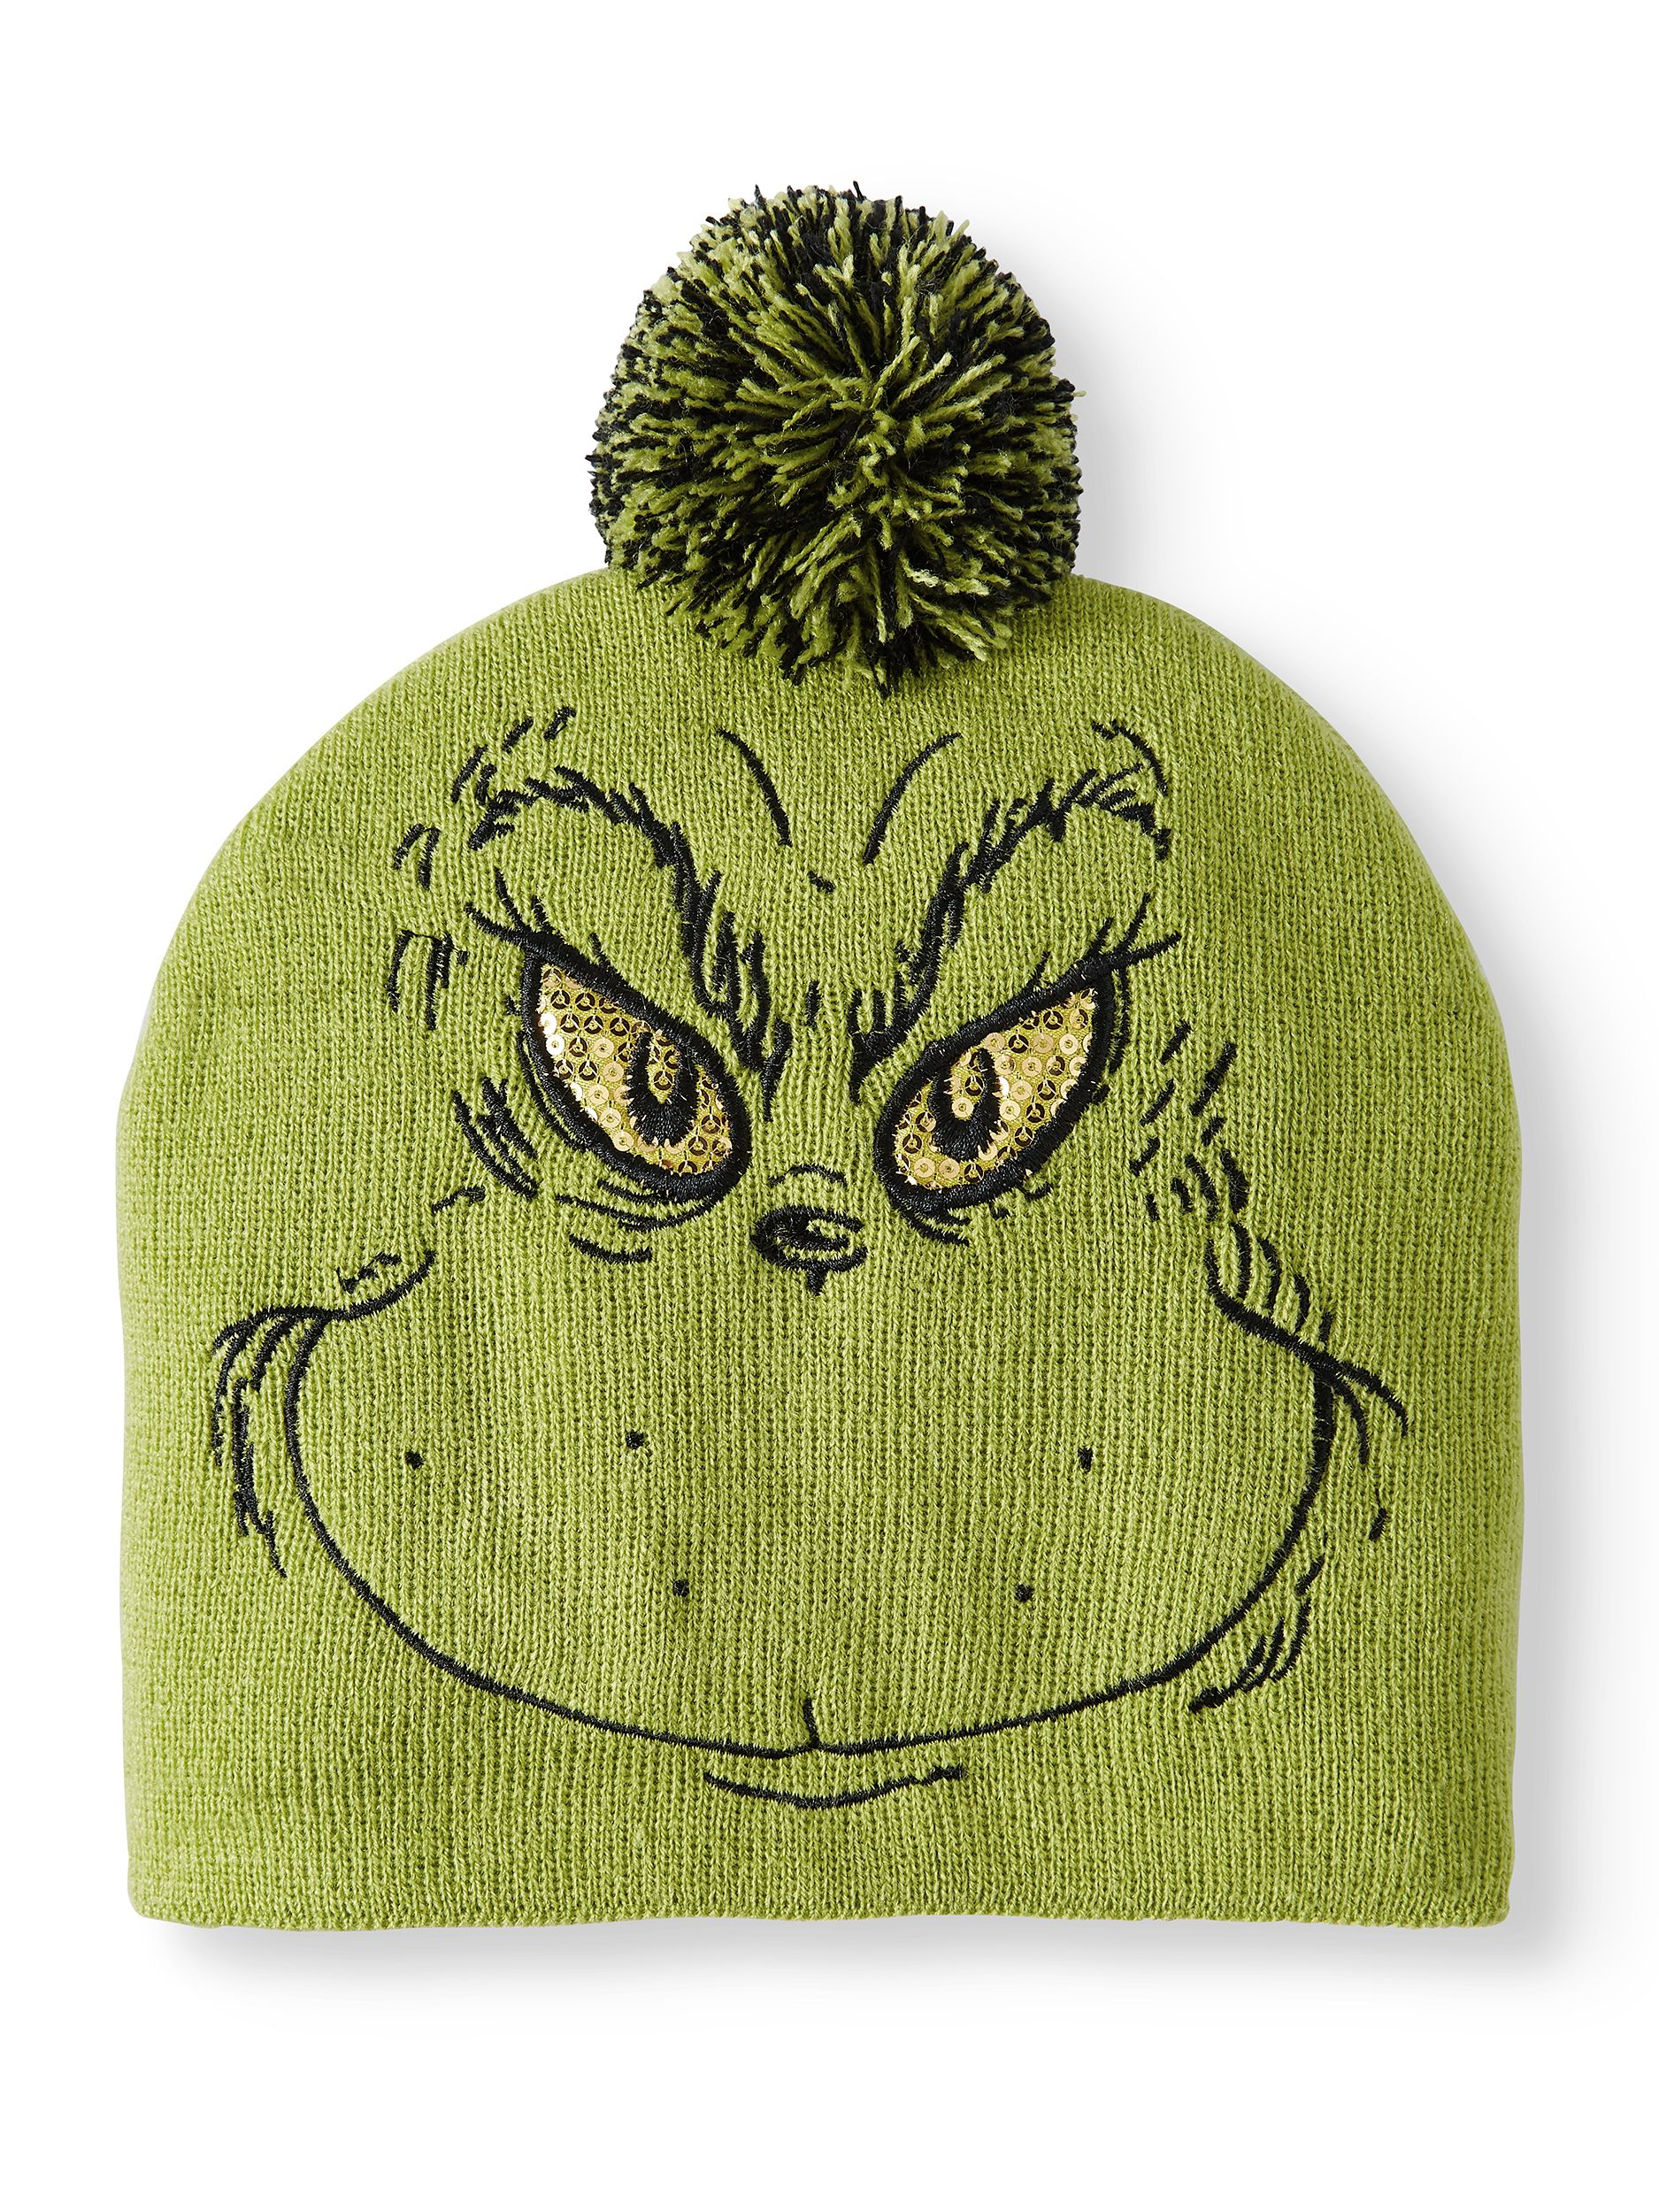 22865652e6dea The Grinch Juniors Knitted Beanie with Sequin Eyes and Pom – Walmart ...